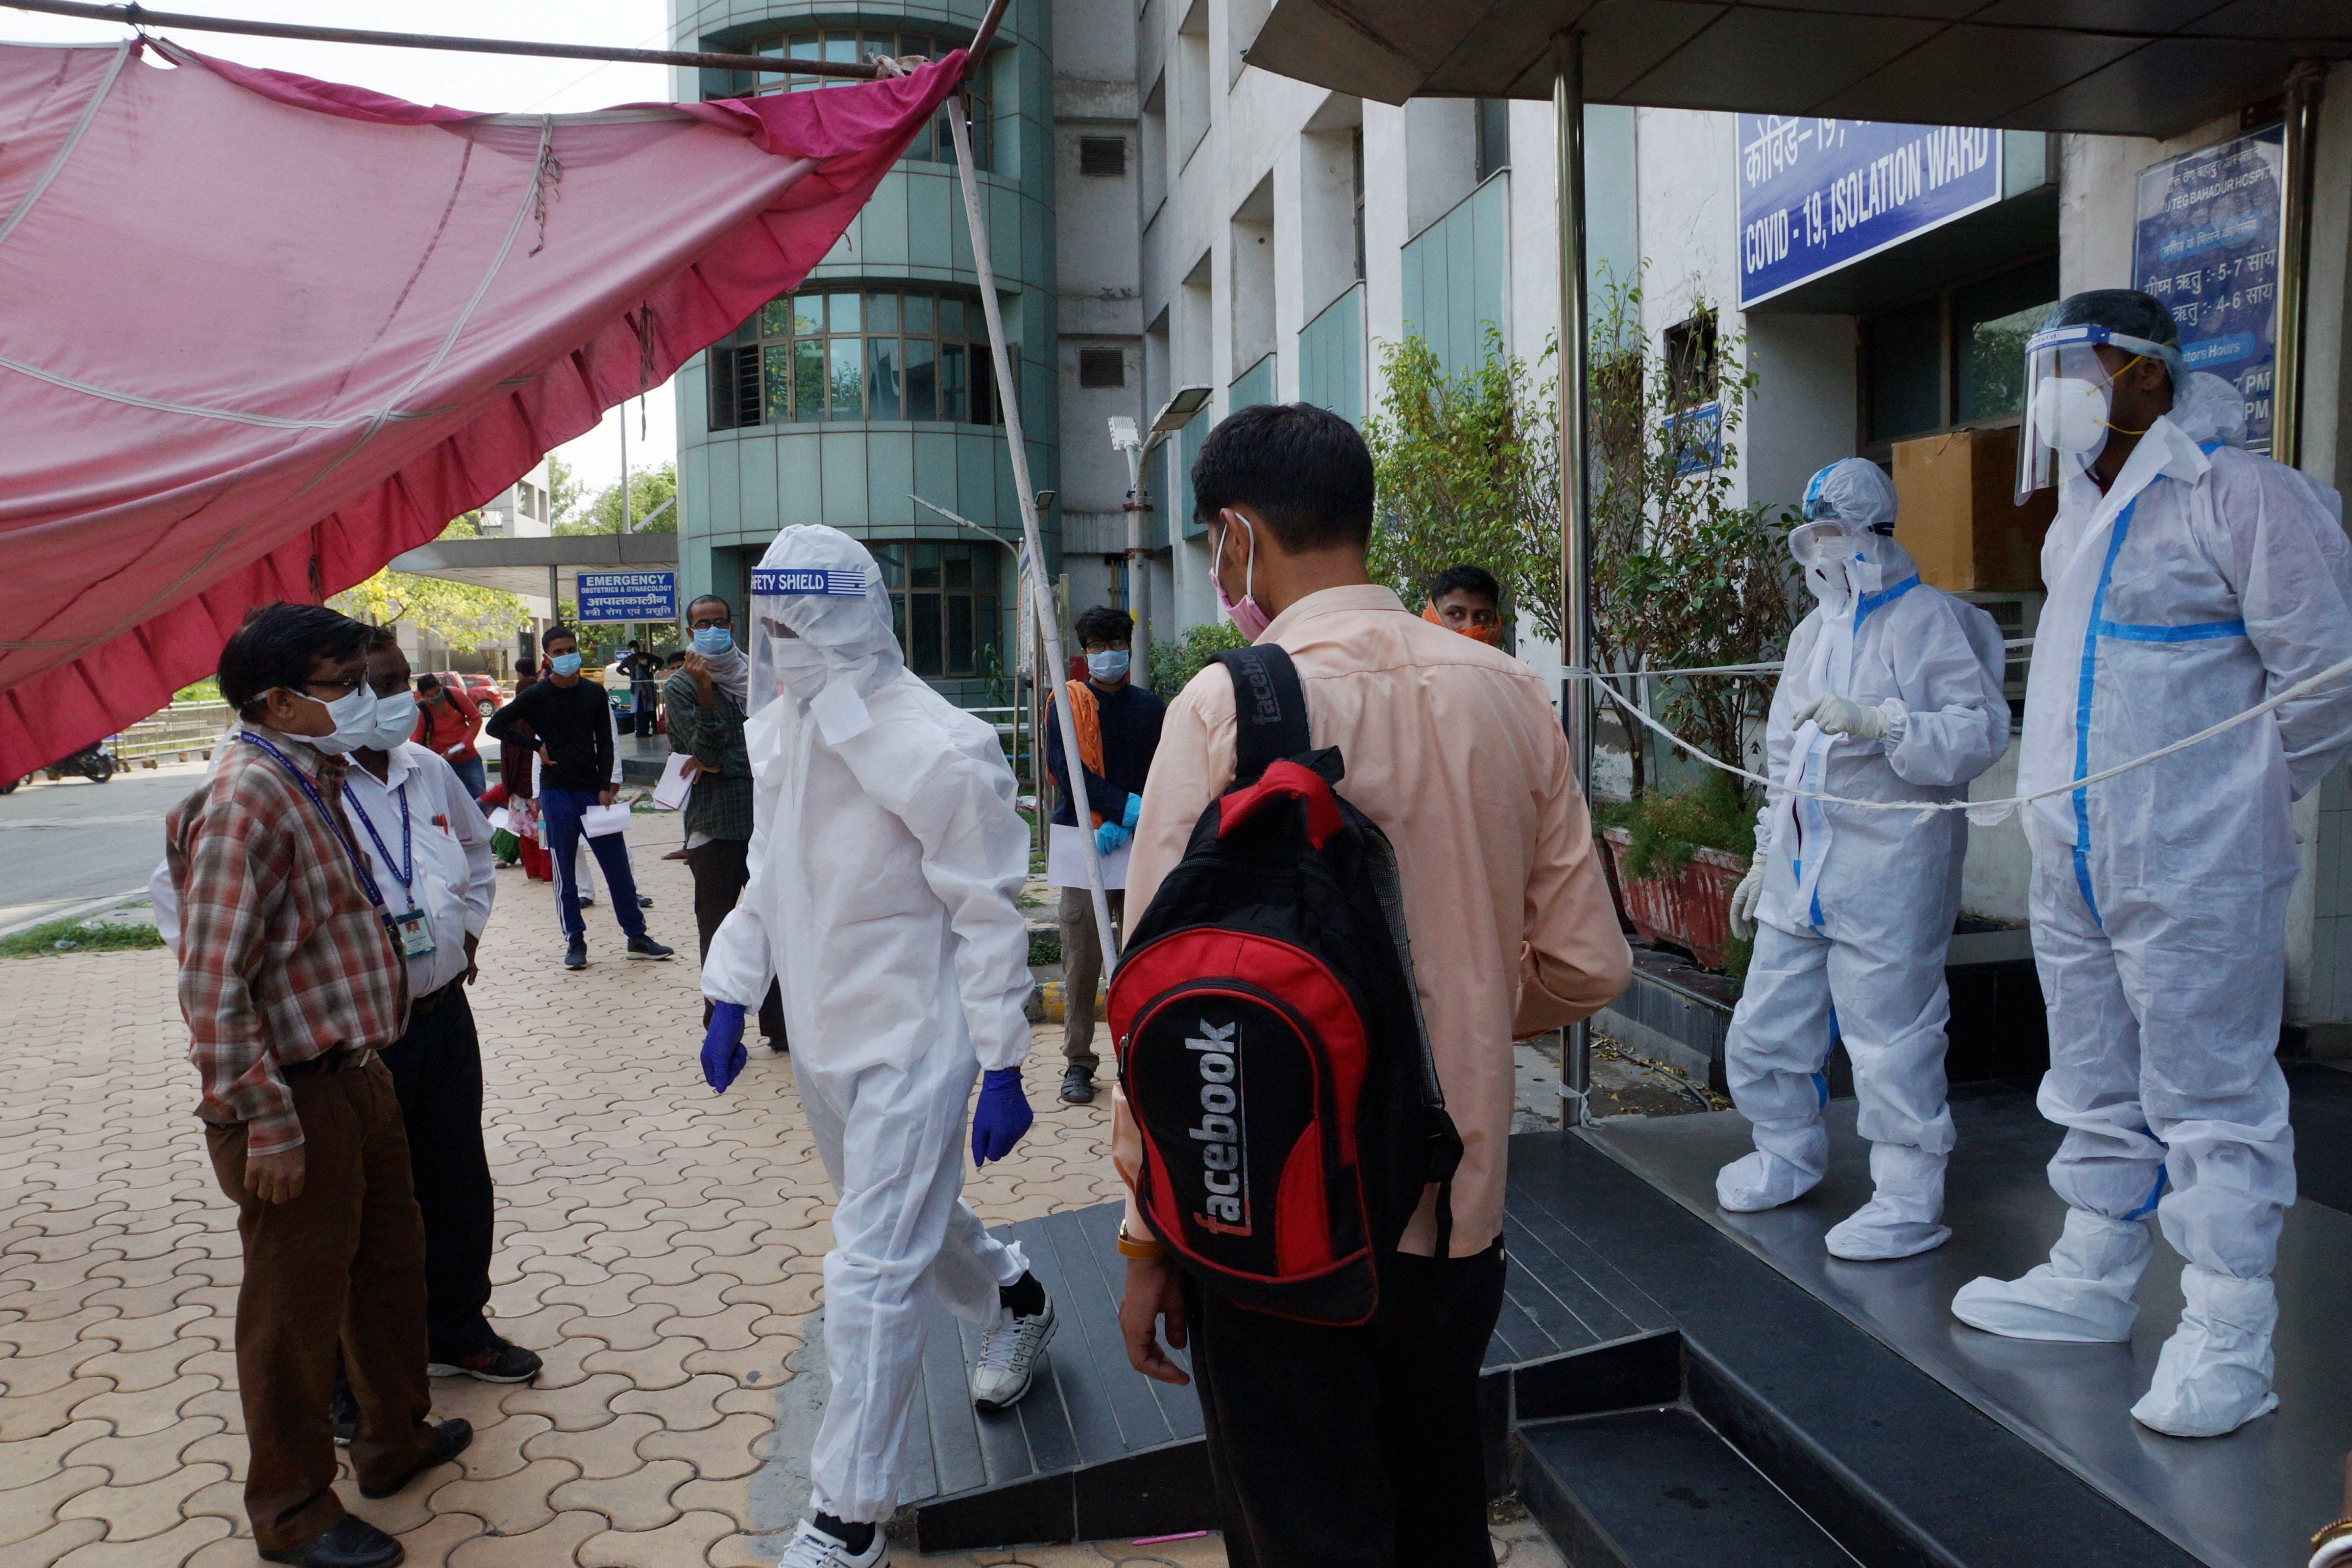 Suspected COVID-19 patients wait to be examined by medics at a government hospital, during the ongoing nationwide lockdown to curb the spread of coronavirus, in New Delhi on Tuesday, June 2, 2020.